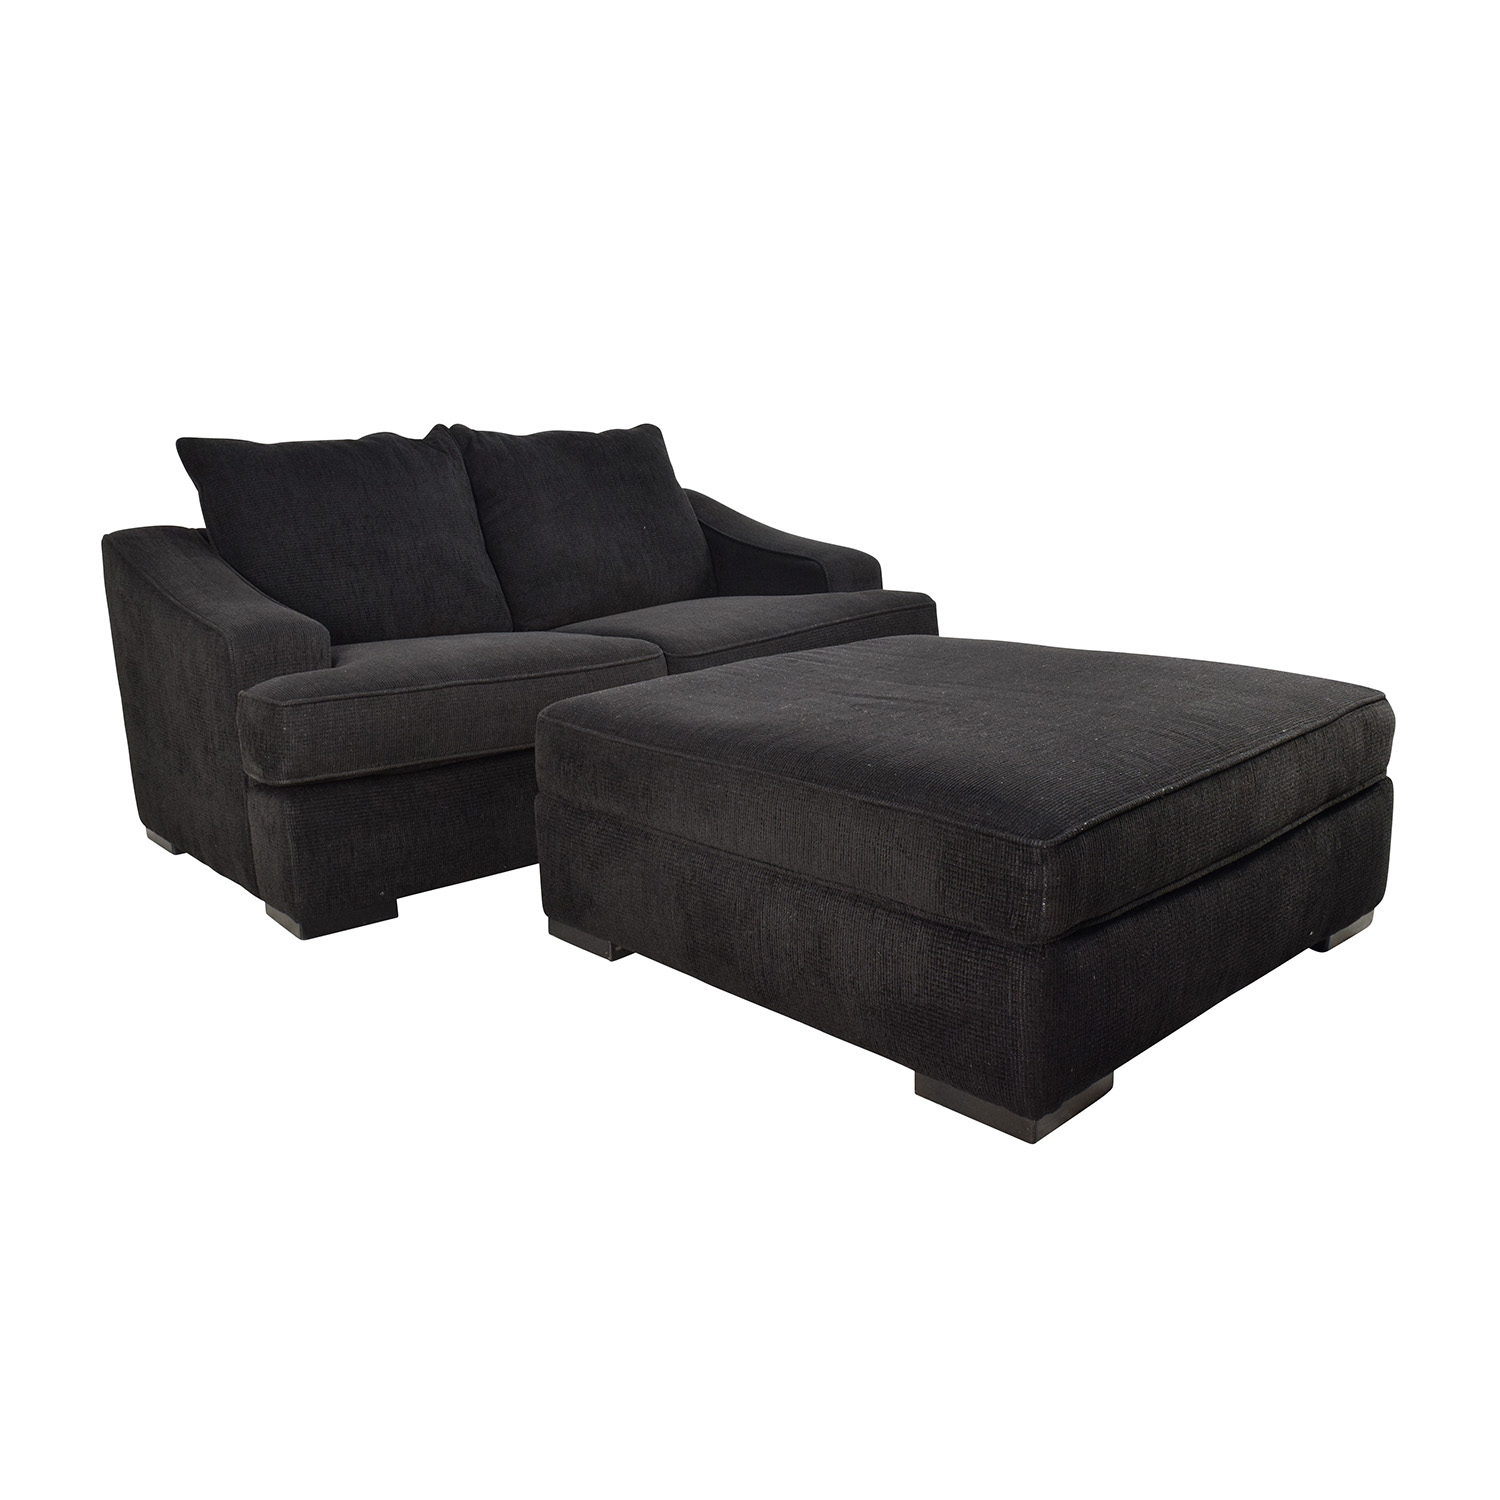 67 Off Black Cloth Loveseat And Matching Oversized Ottoman Sofas